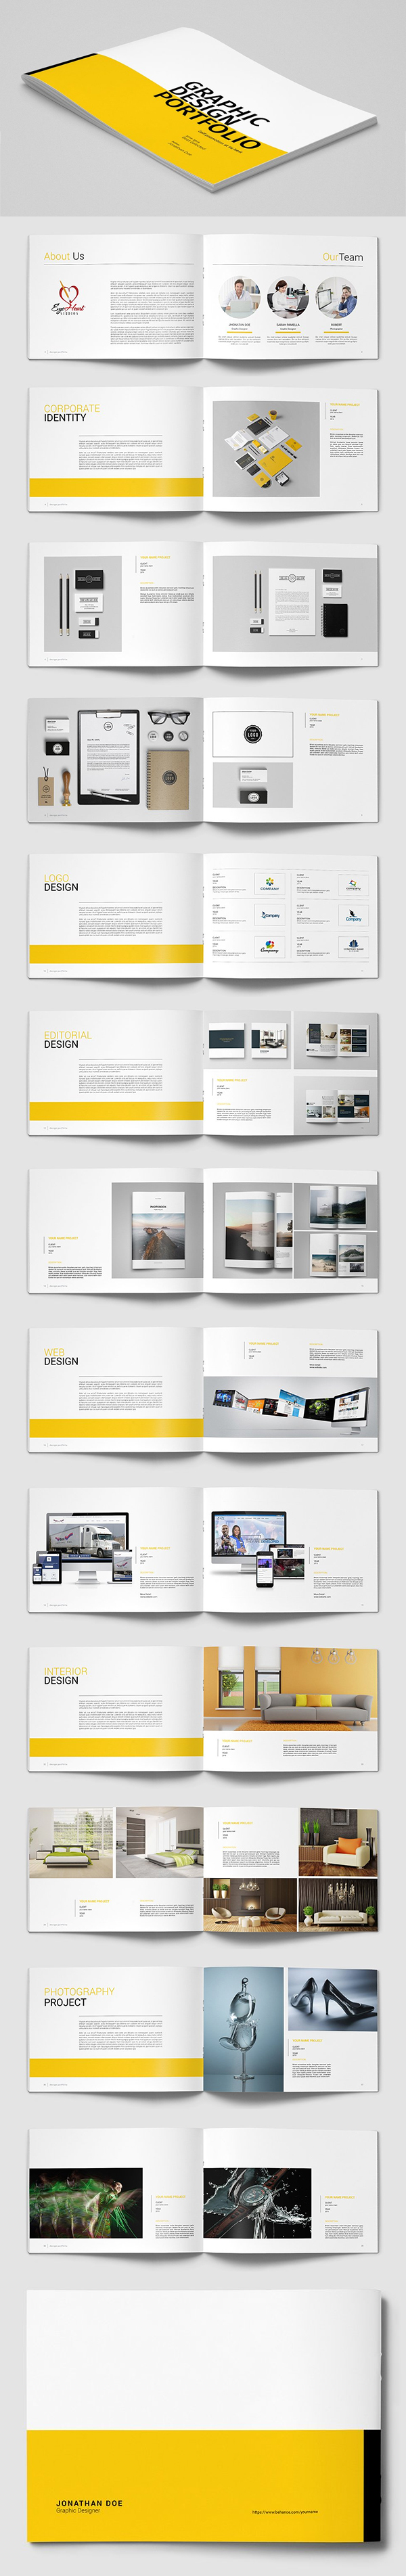 Best Business Brochure Templates